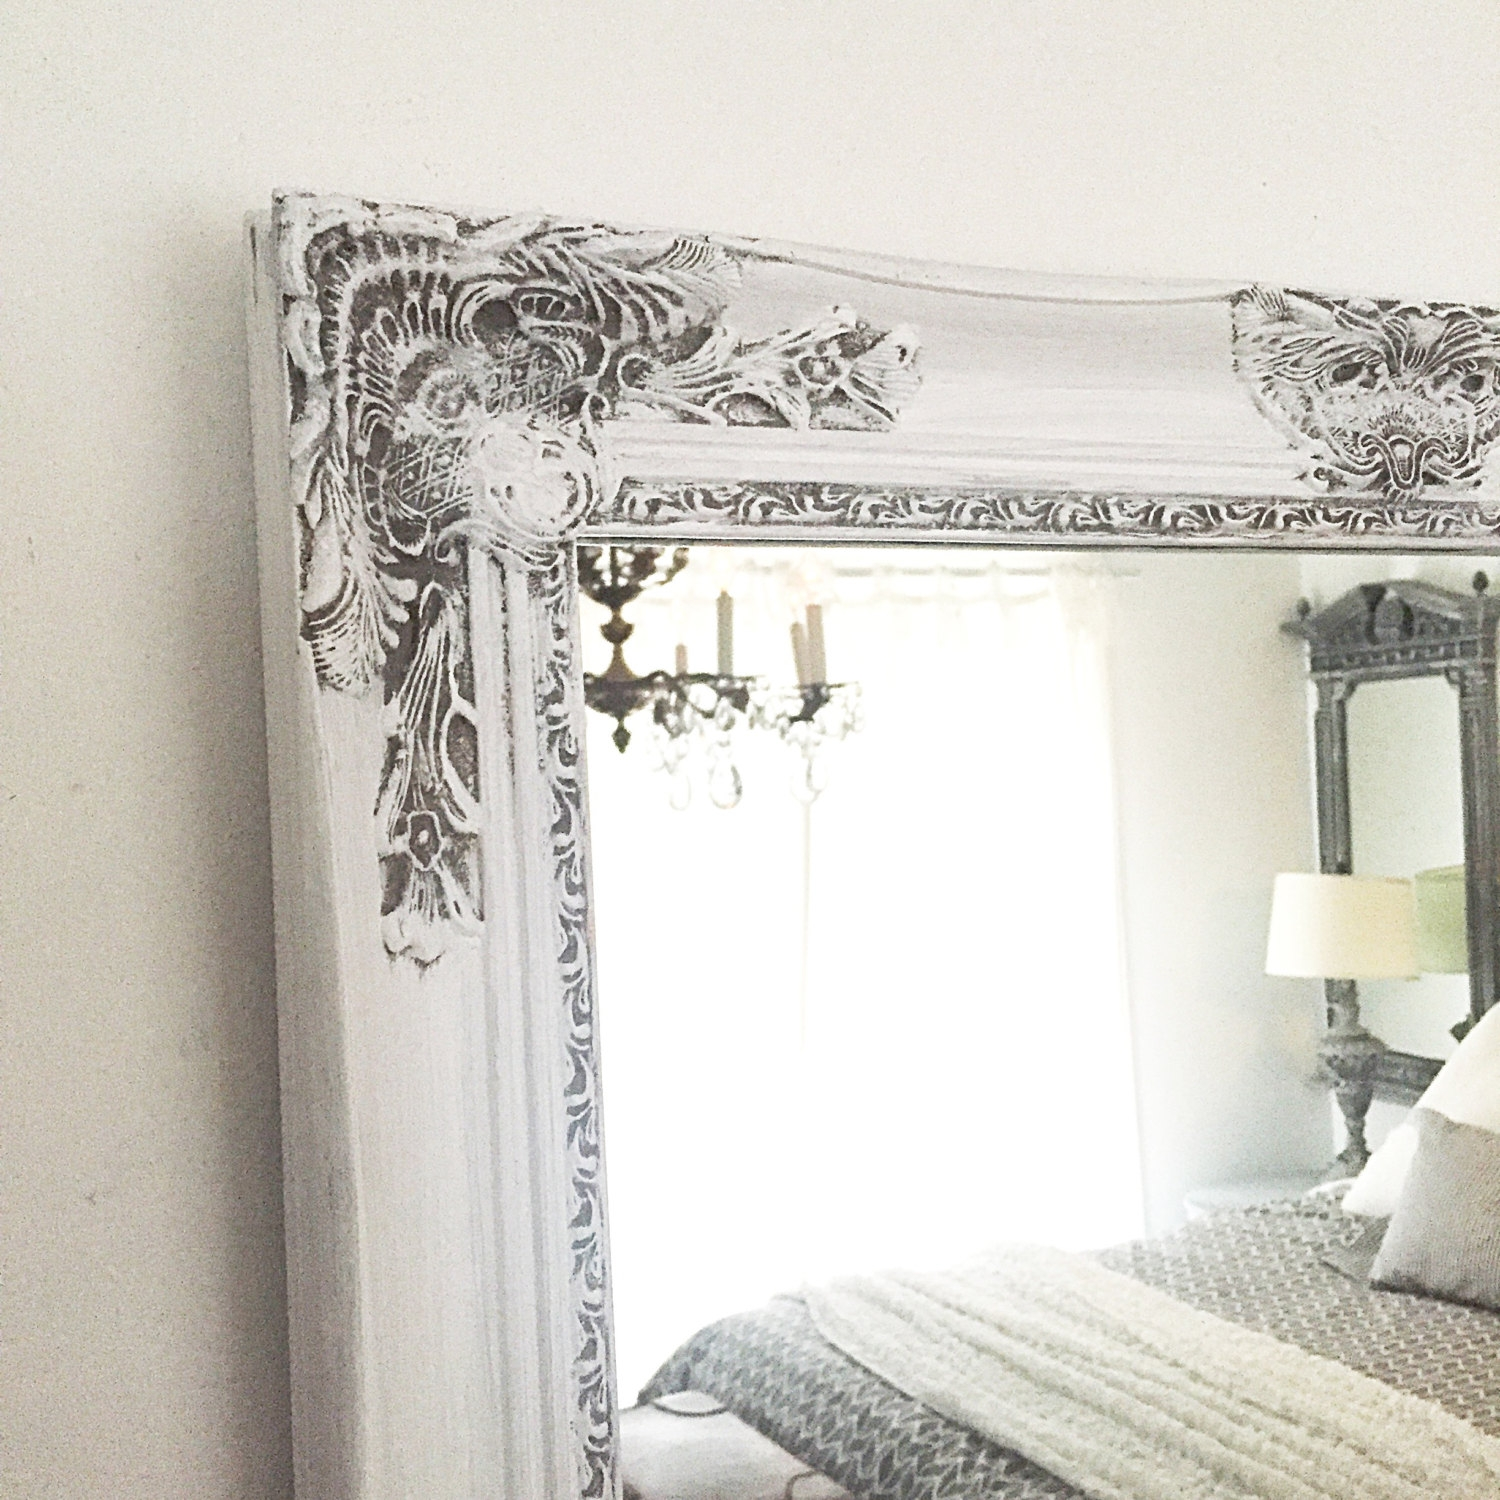 Ornate Full Length Wall Mirror Mirror Design Ideas Inside Ornate Full Length Wall Mirror (Image 9 of 15)